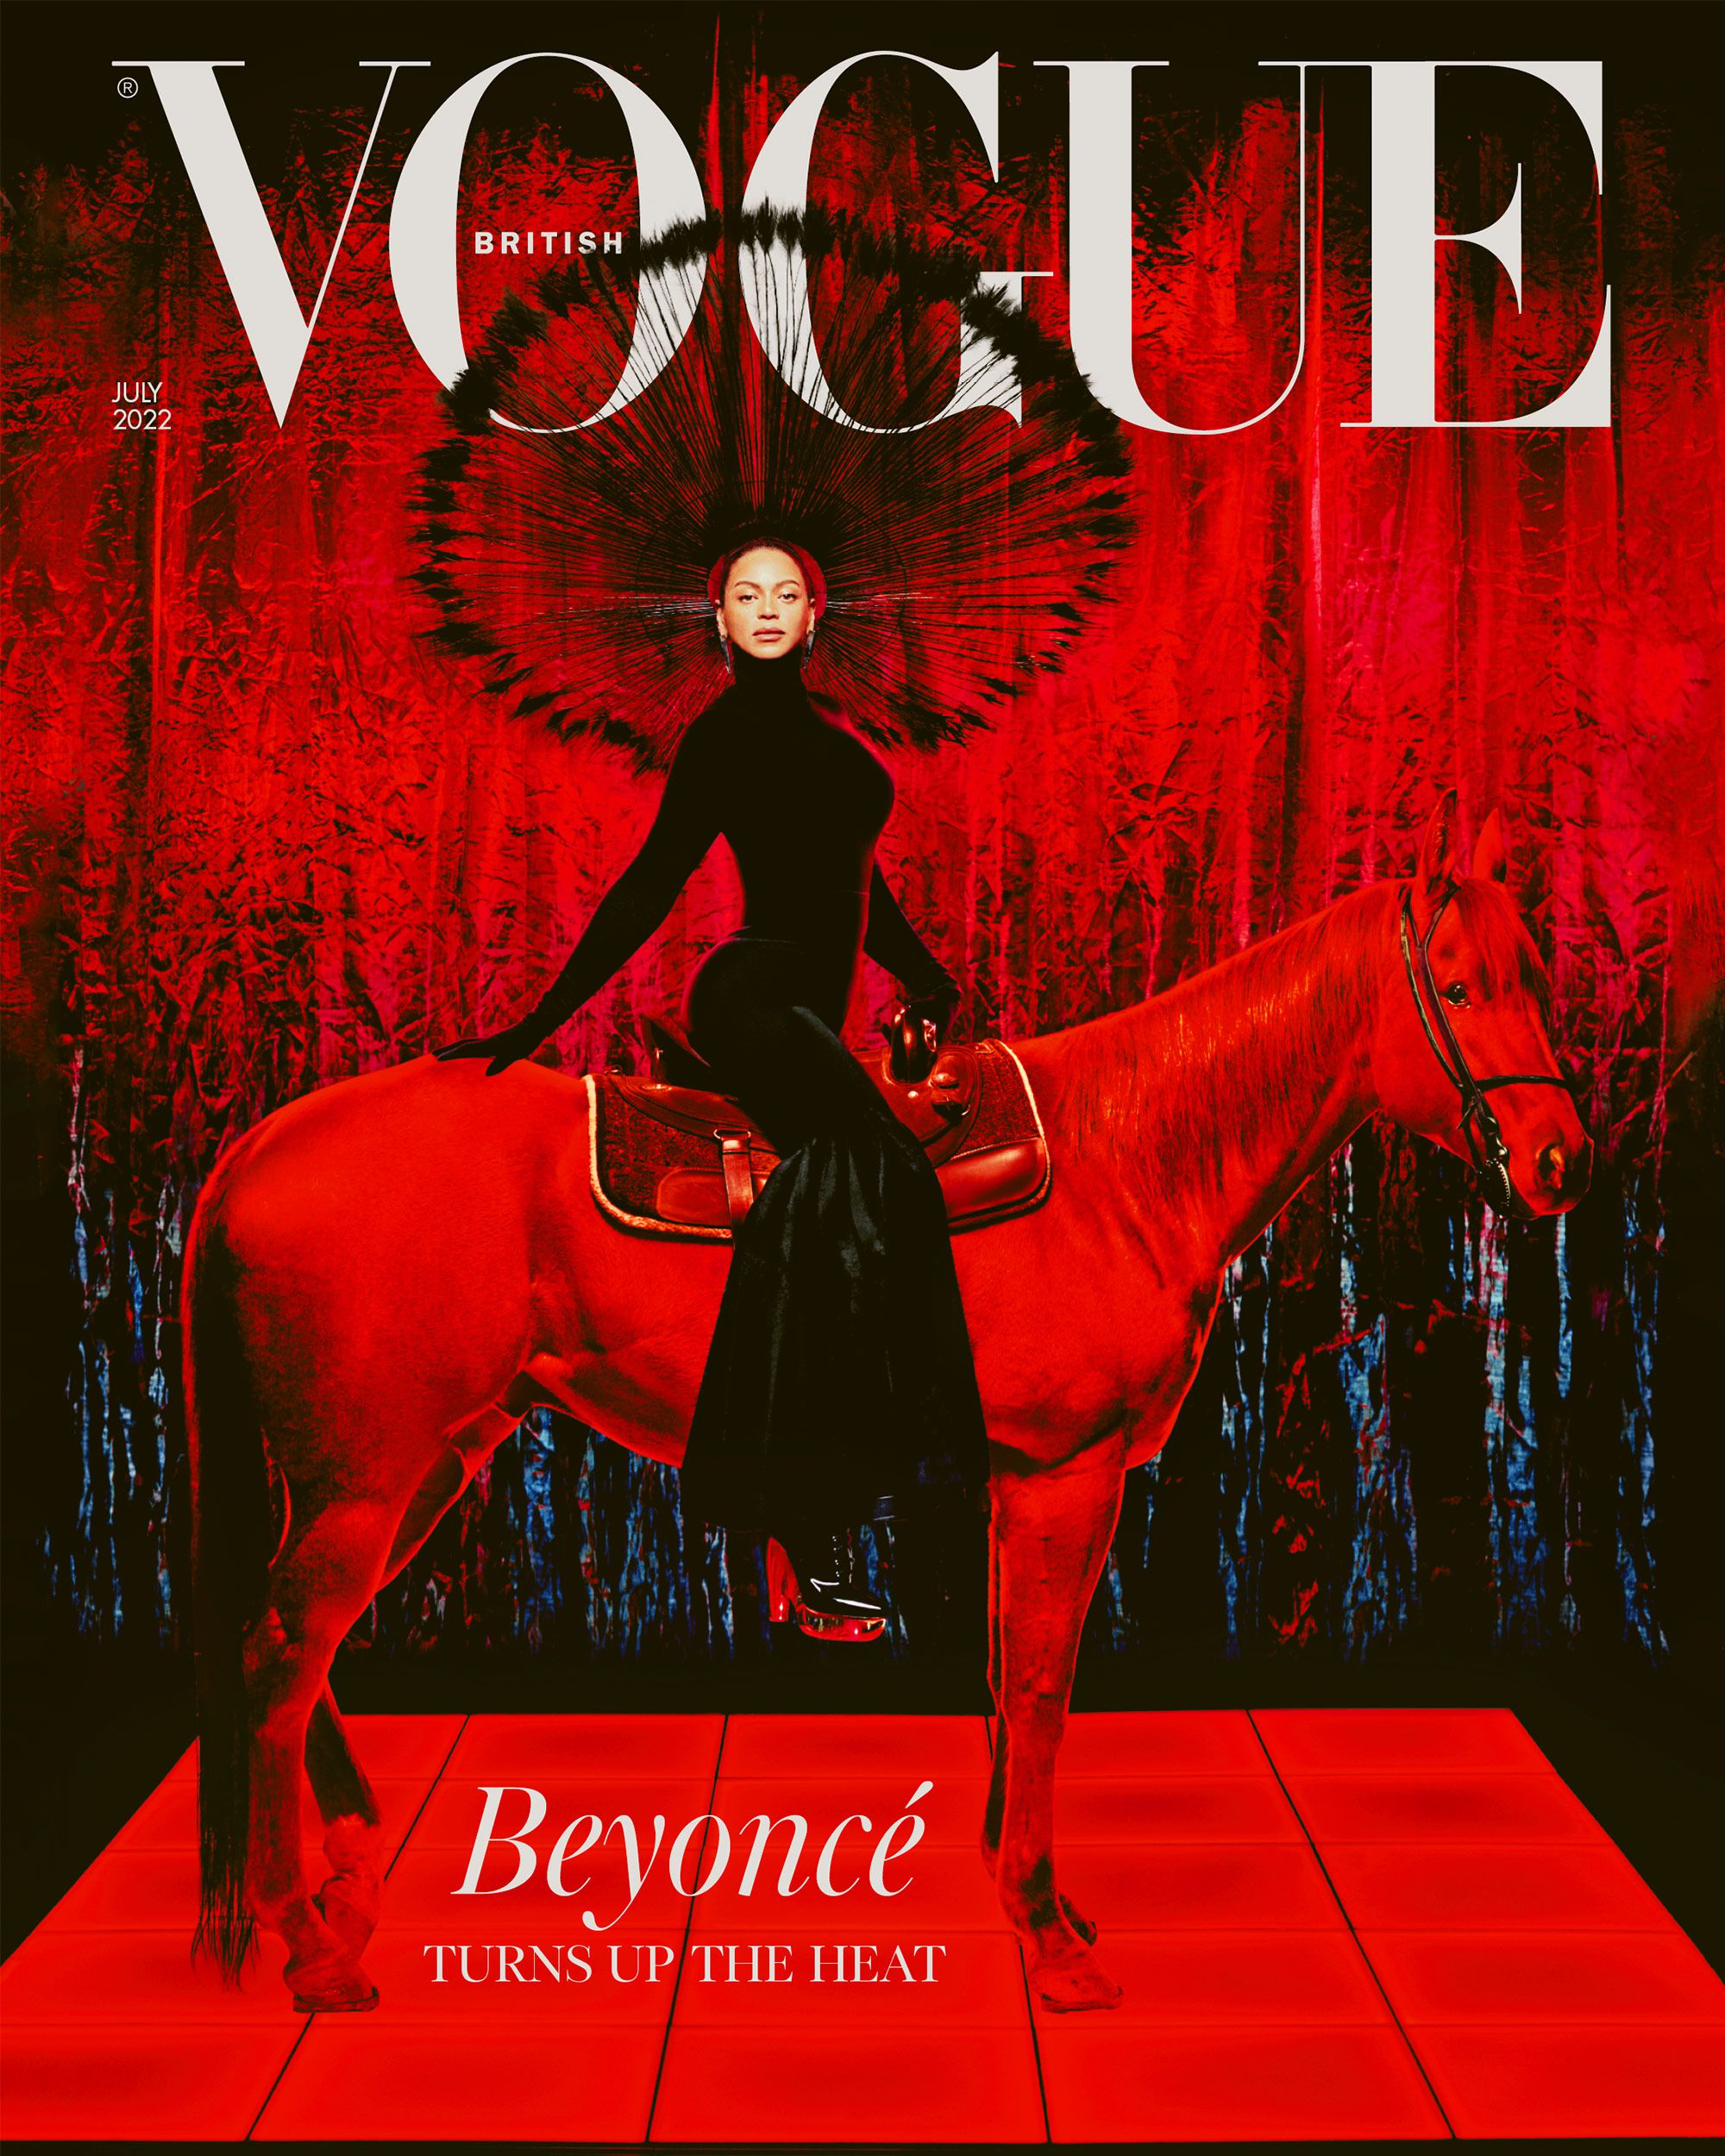 Vogue latest magazine cover